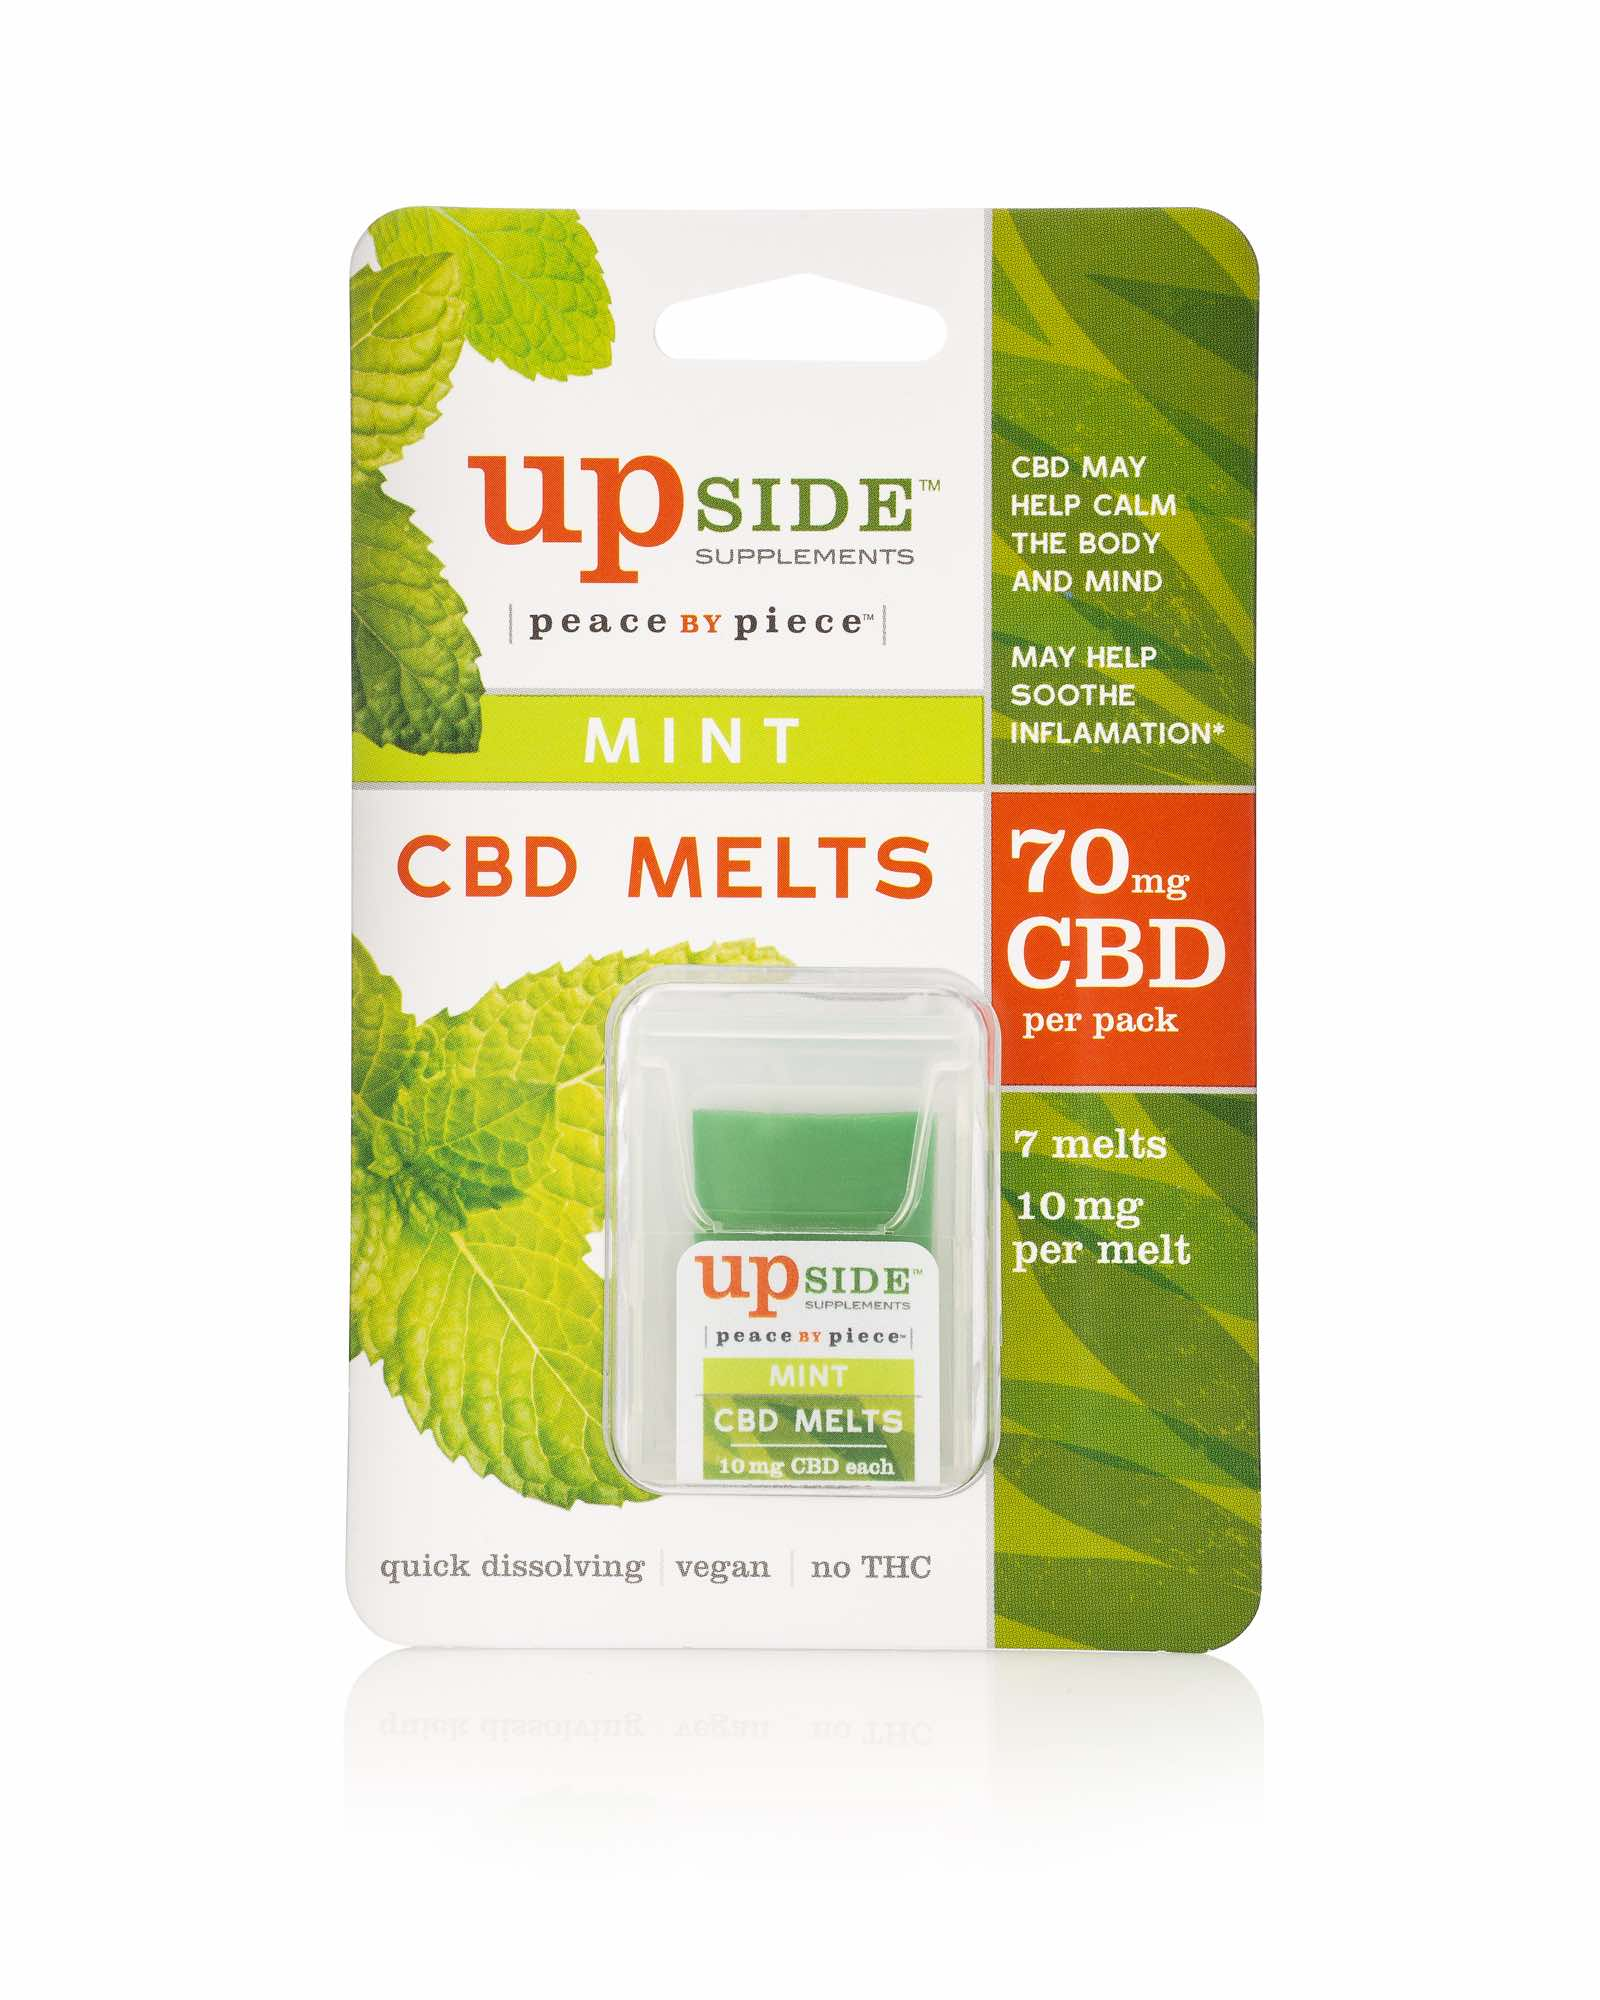 CBD Melts Package - CBD Mint Melts